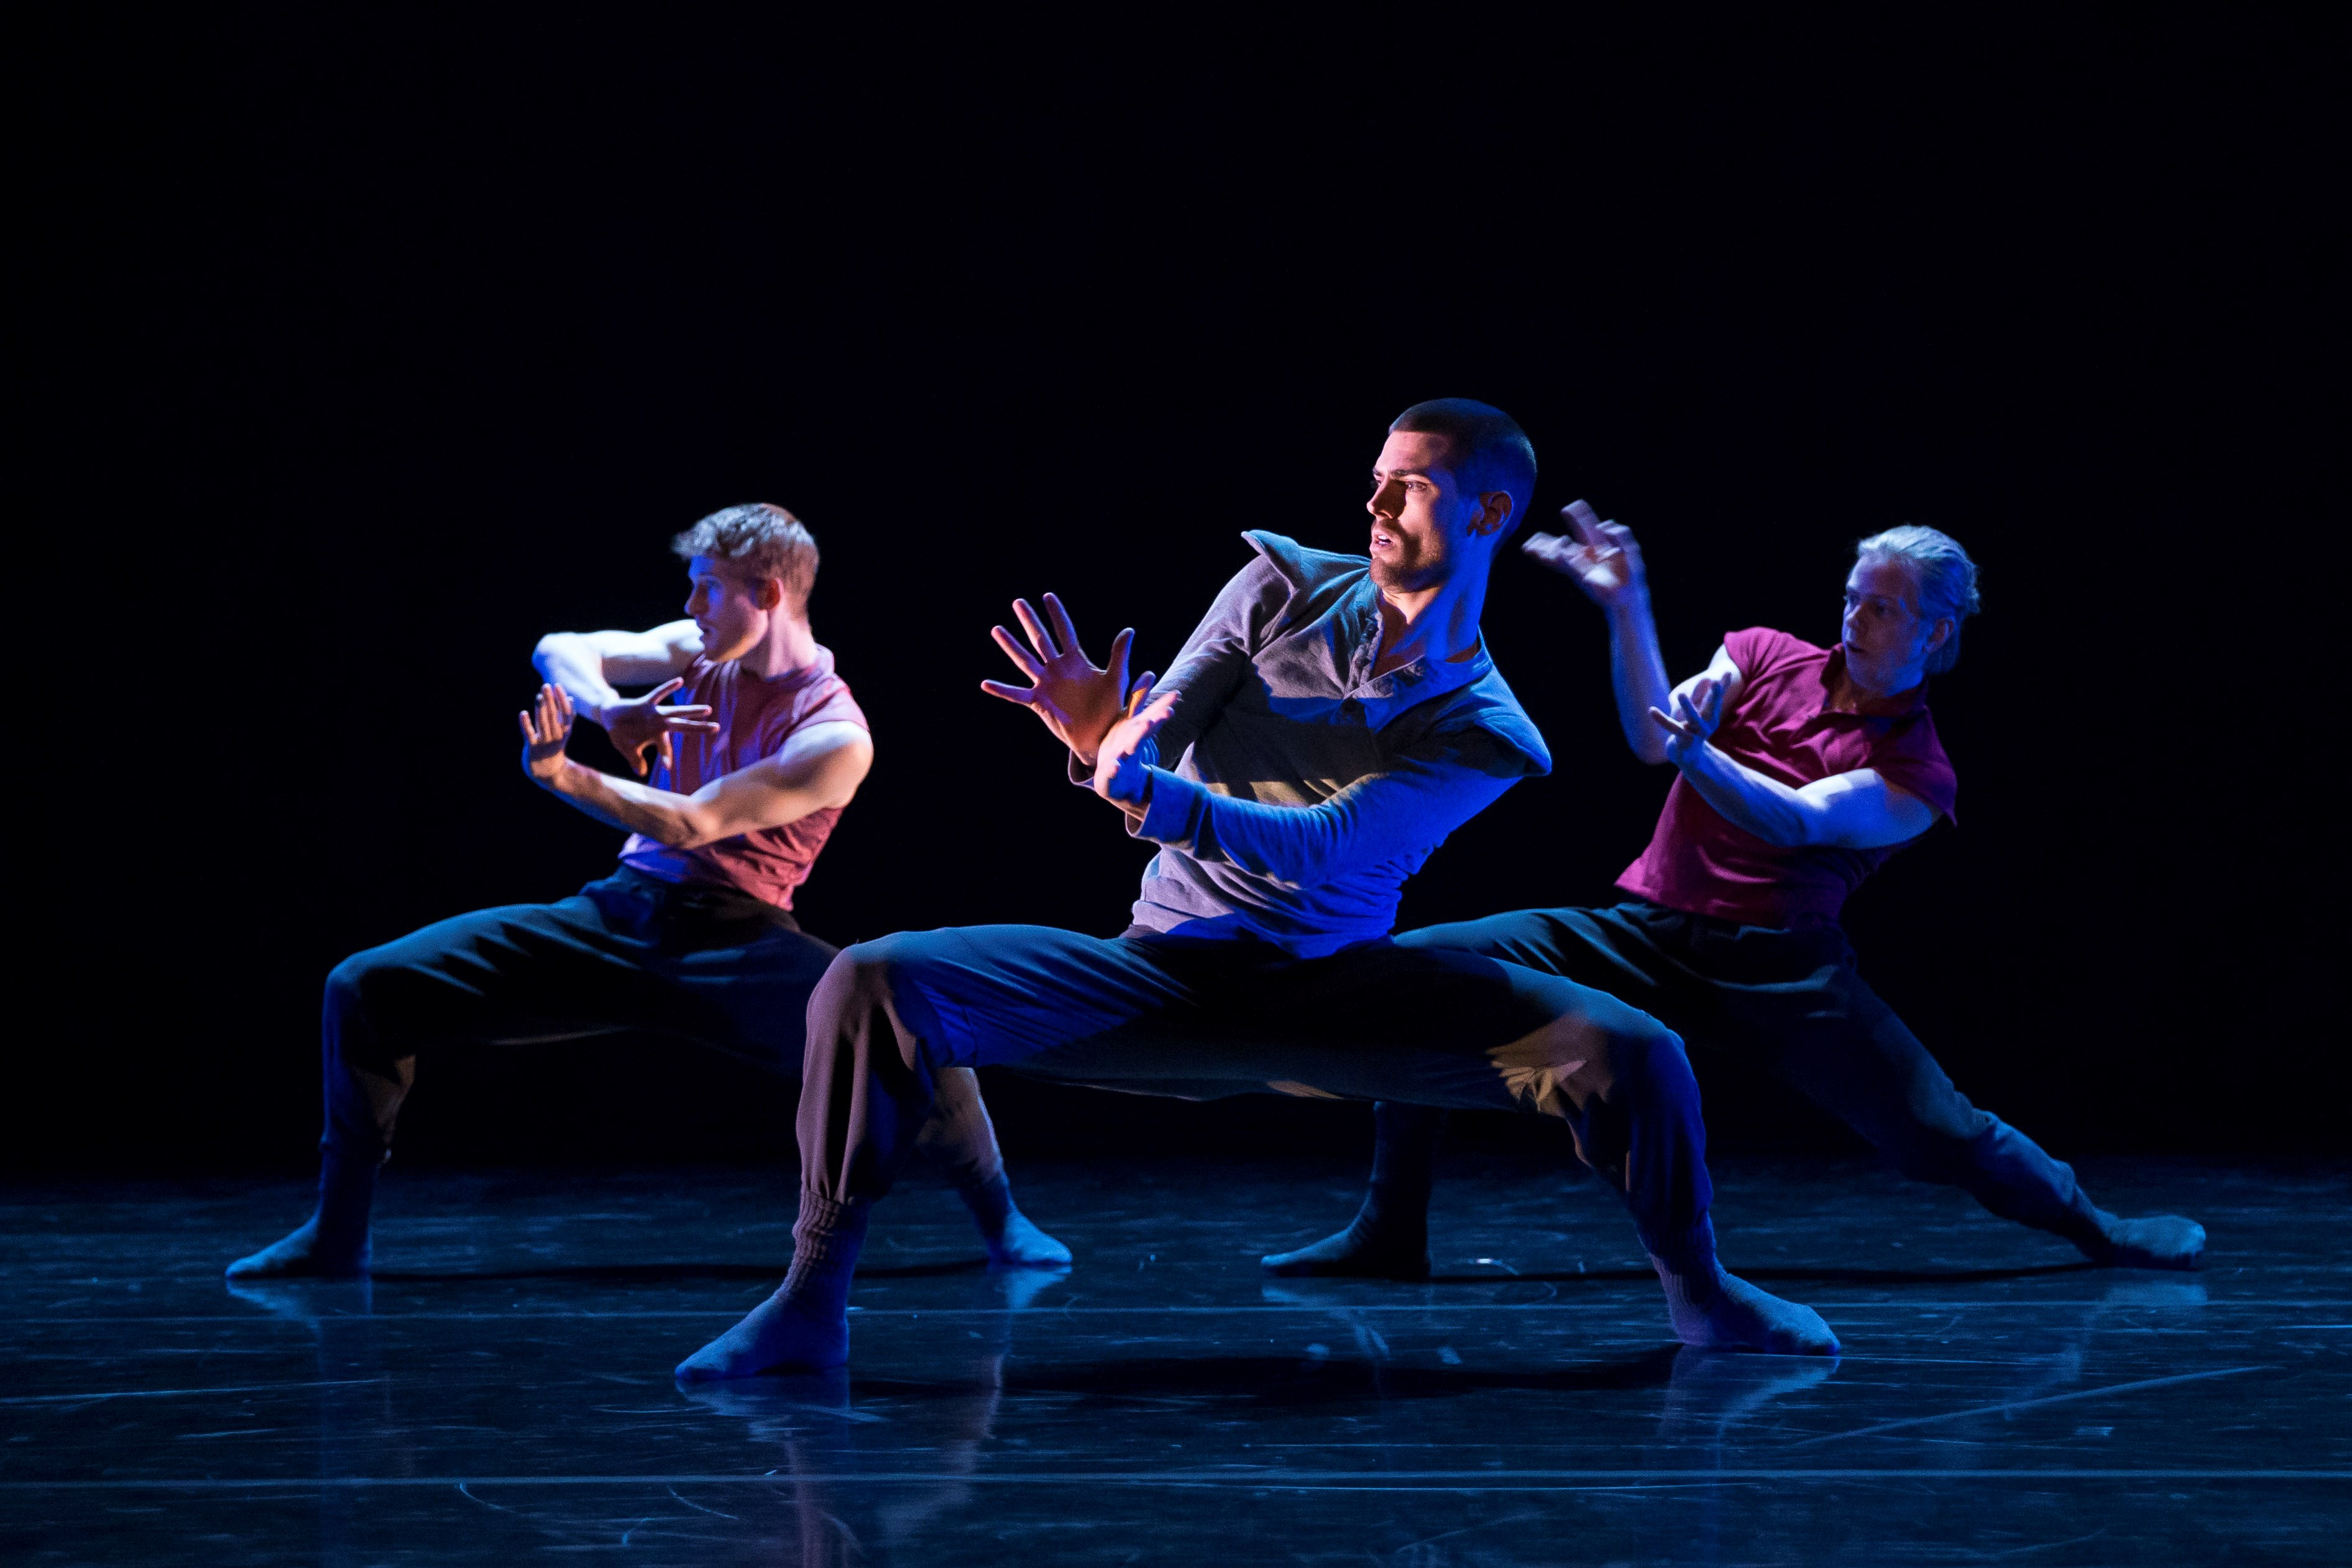 Hubbard Street Dancer's Michael Gross, David Schultz, and Elliot Hammans in Clan(device) by Alice Klock. Photo by Todd Rosenberg.